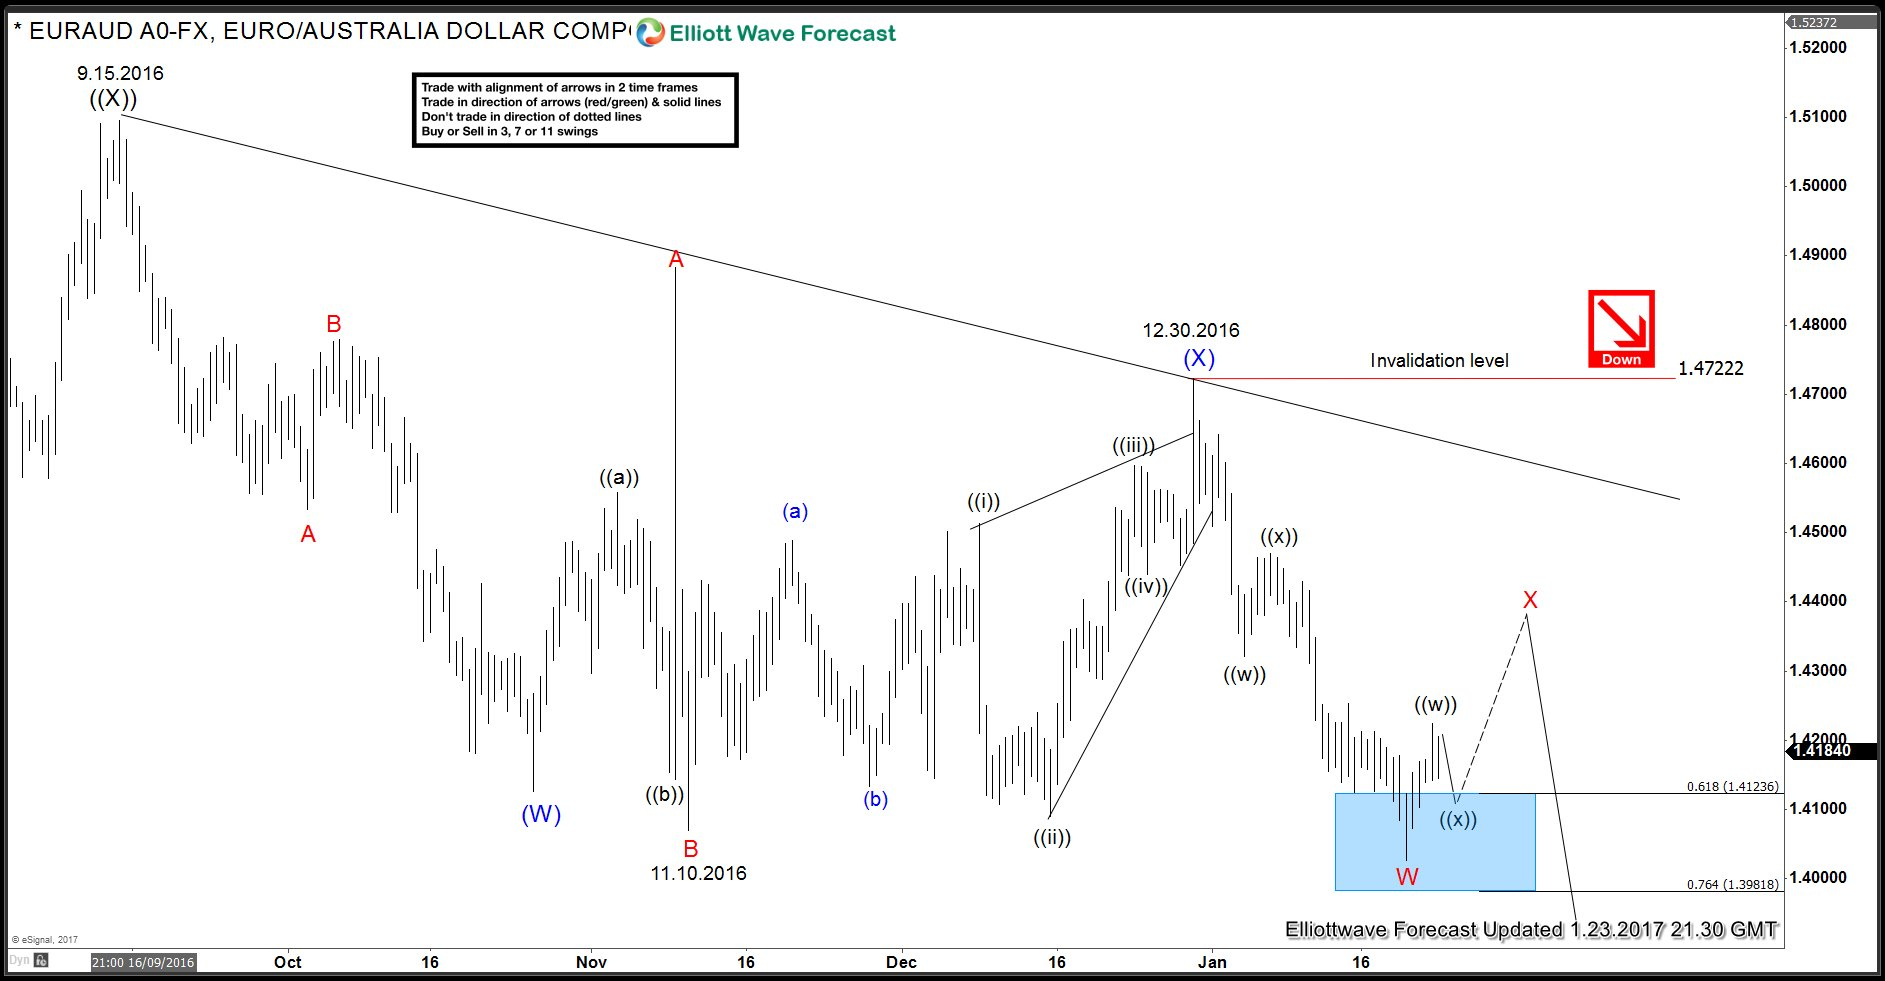 EURAUD Elliott Wave Analysis 1.23.2017